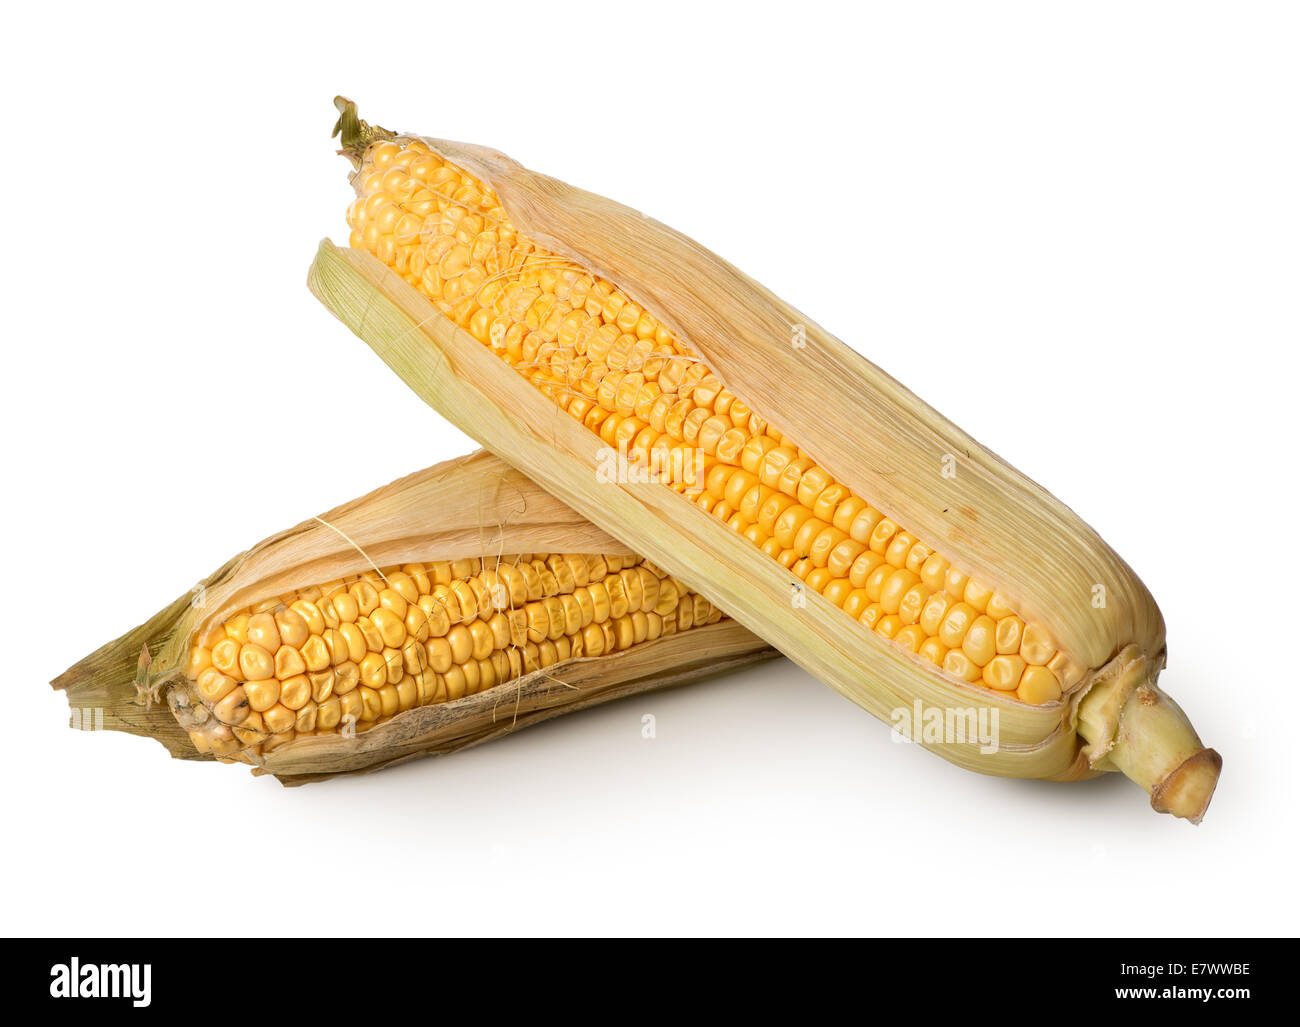 Two ears of corn isolated on a white background - Stock Image